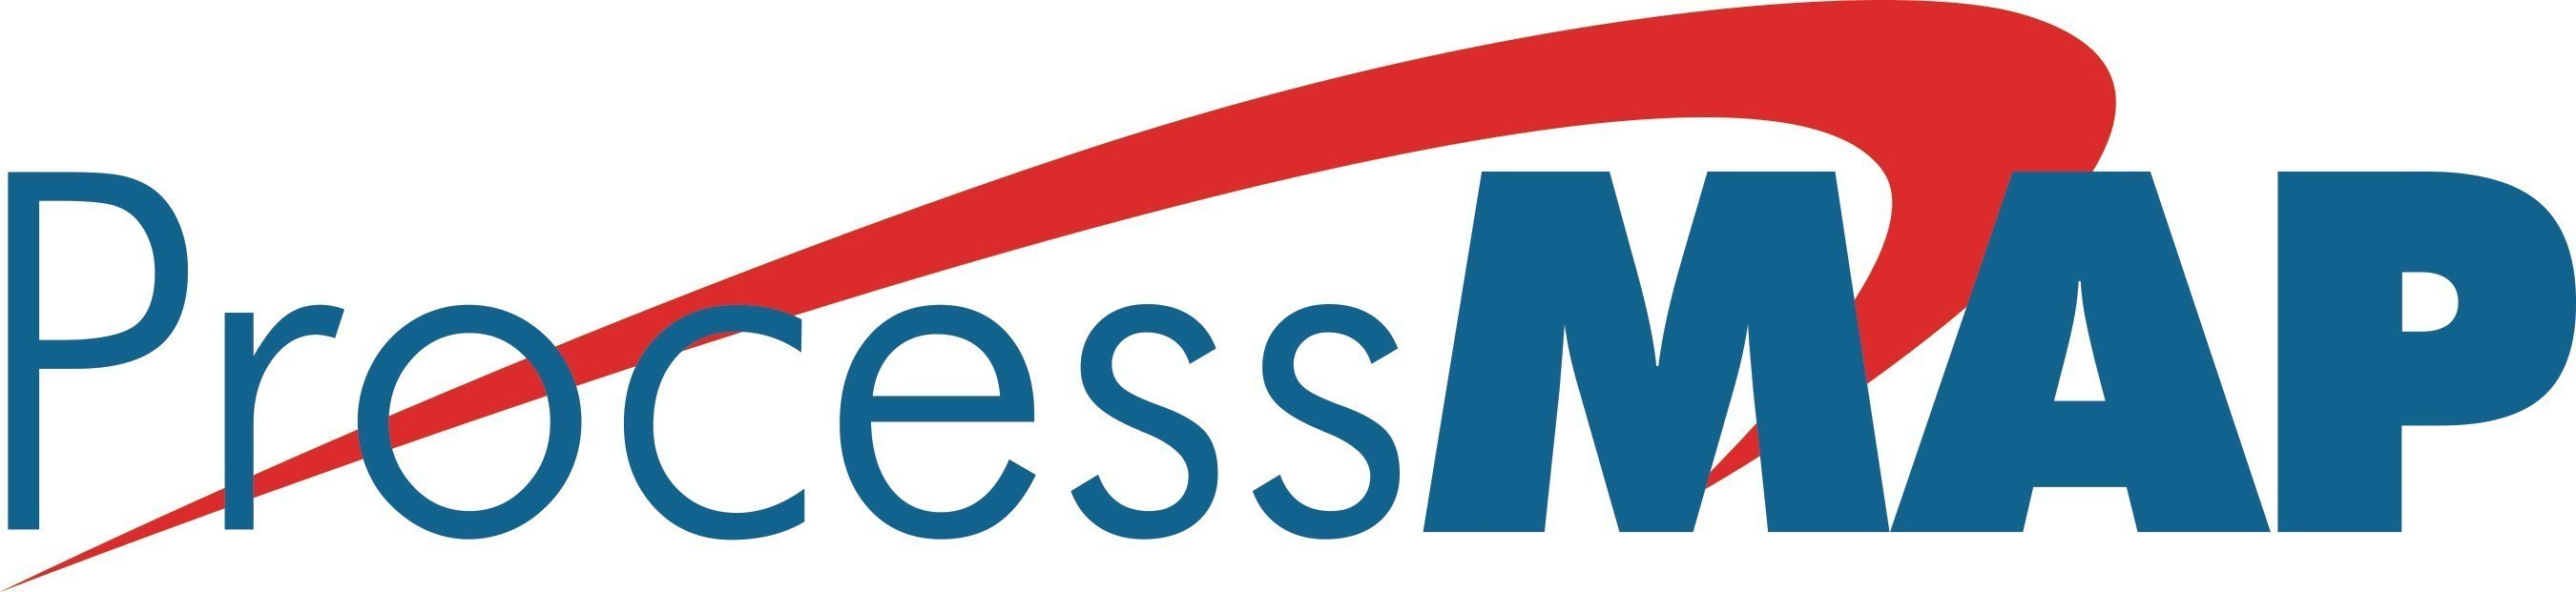 ProcessMAP Corporation is a leading provider of cloud-based enterprise software solutions that empowers organizations to manage risk in three key areas: Employee Health & Safety; Environment & Sustainability; and Enterprise Compliance. The company is headquartered in Sunrise, Florida with locations across the globe, serving customers in over 95 countries.